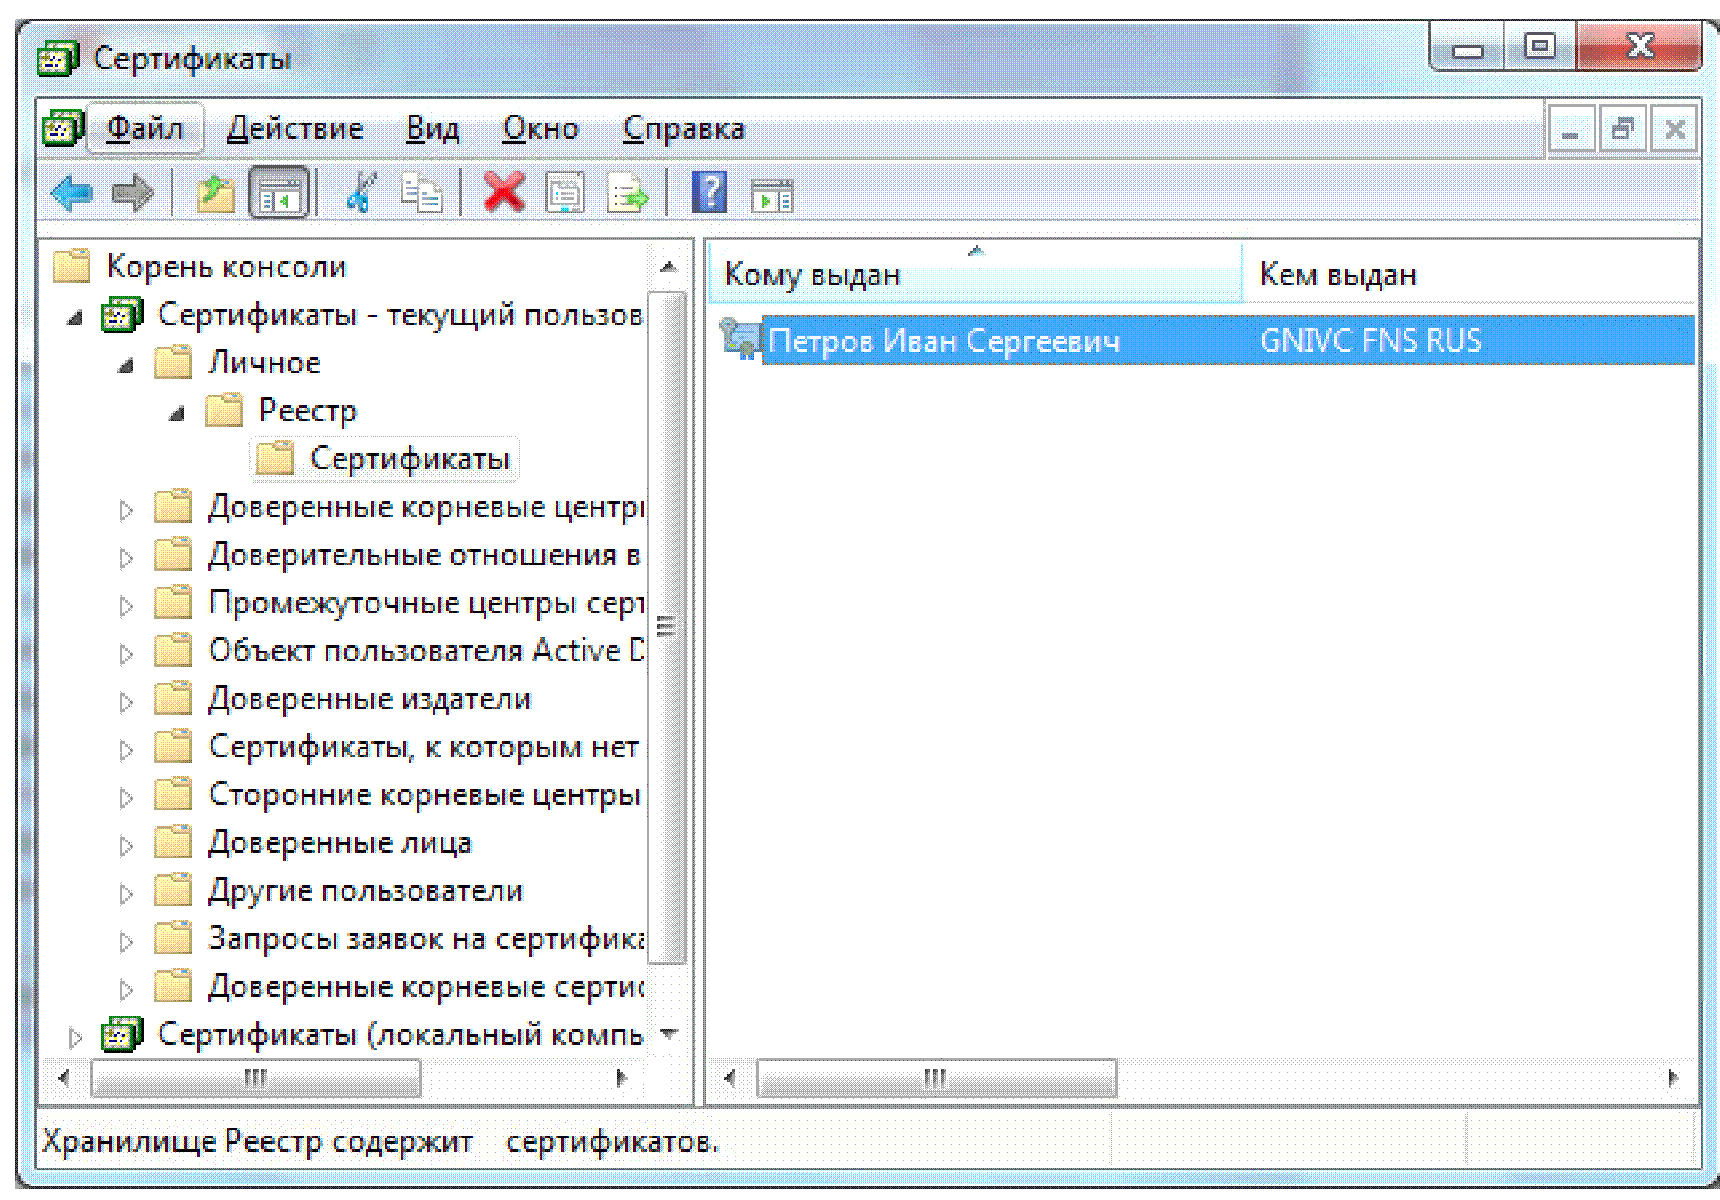 Фото 2 - где хранятся сертификаты в windows 7